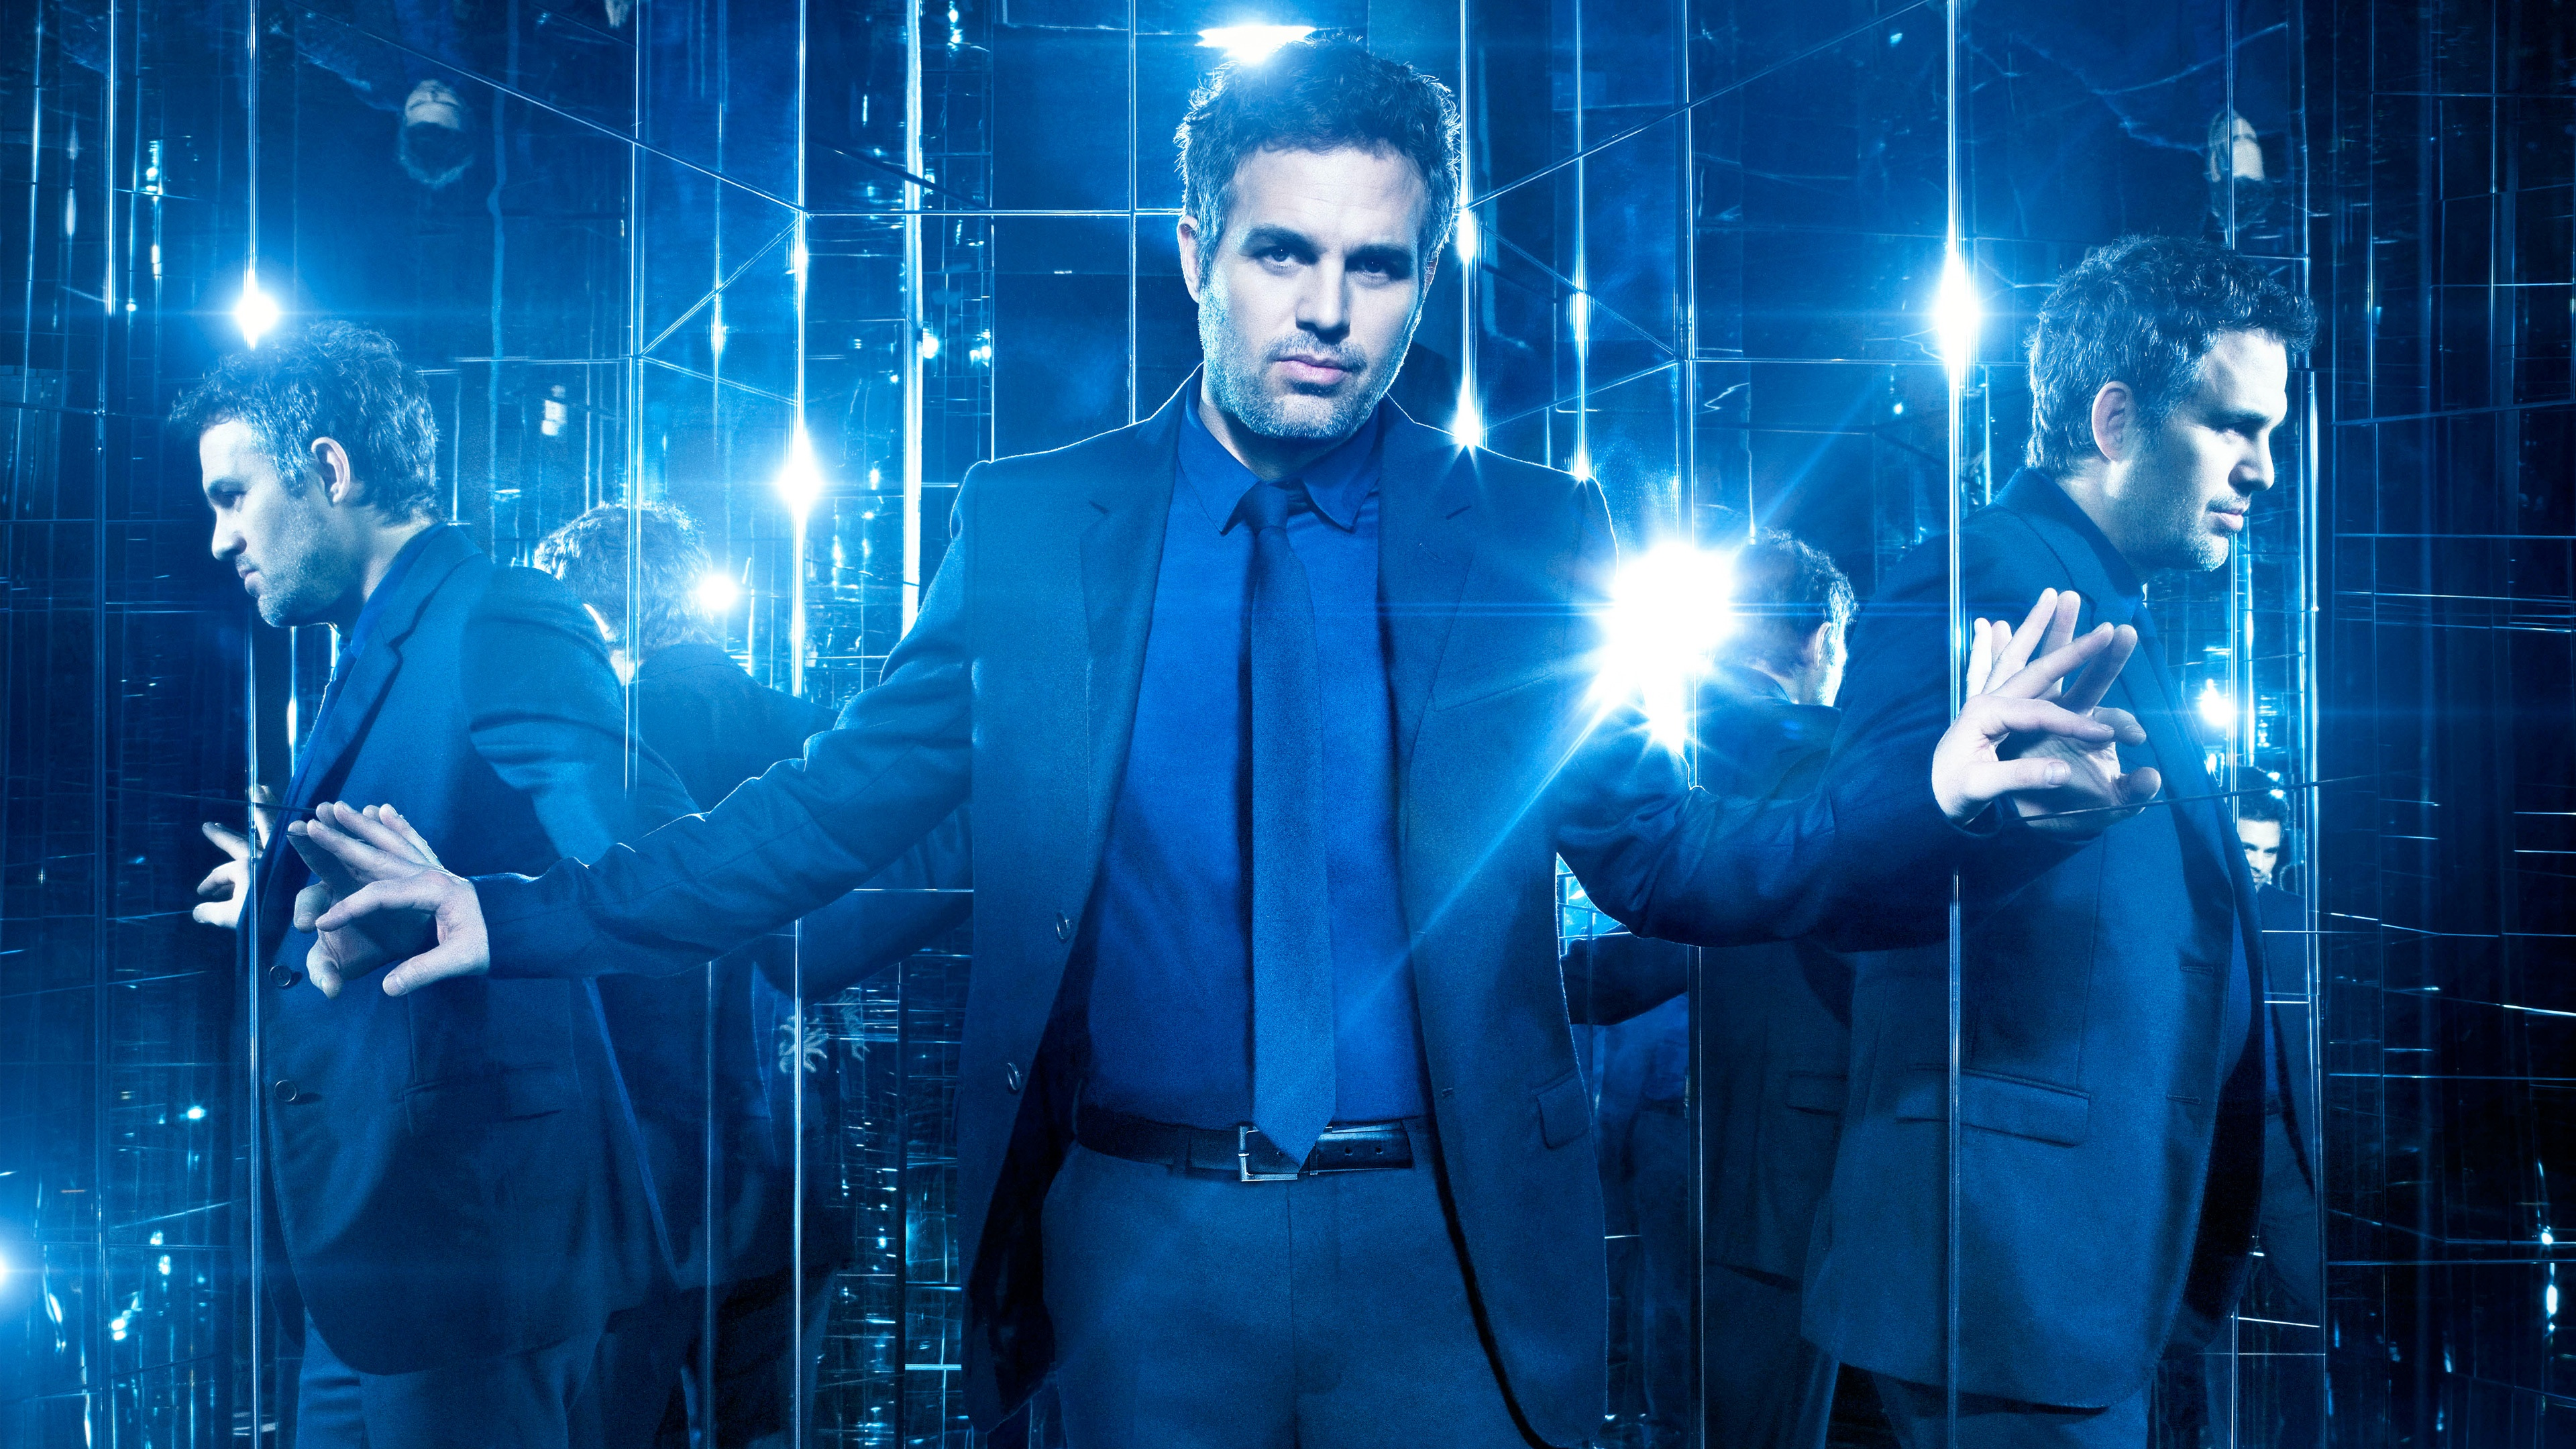 now you see me 2 movie download free